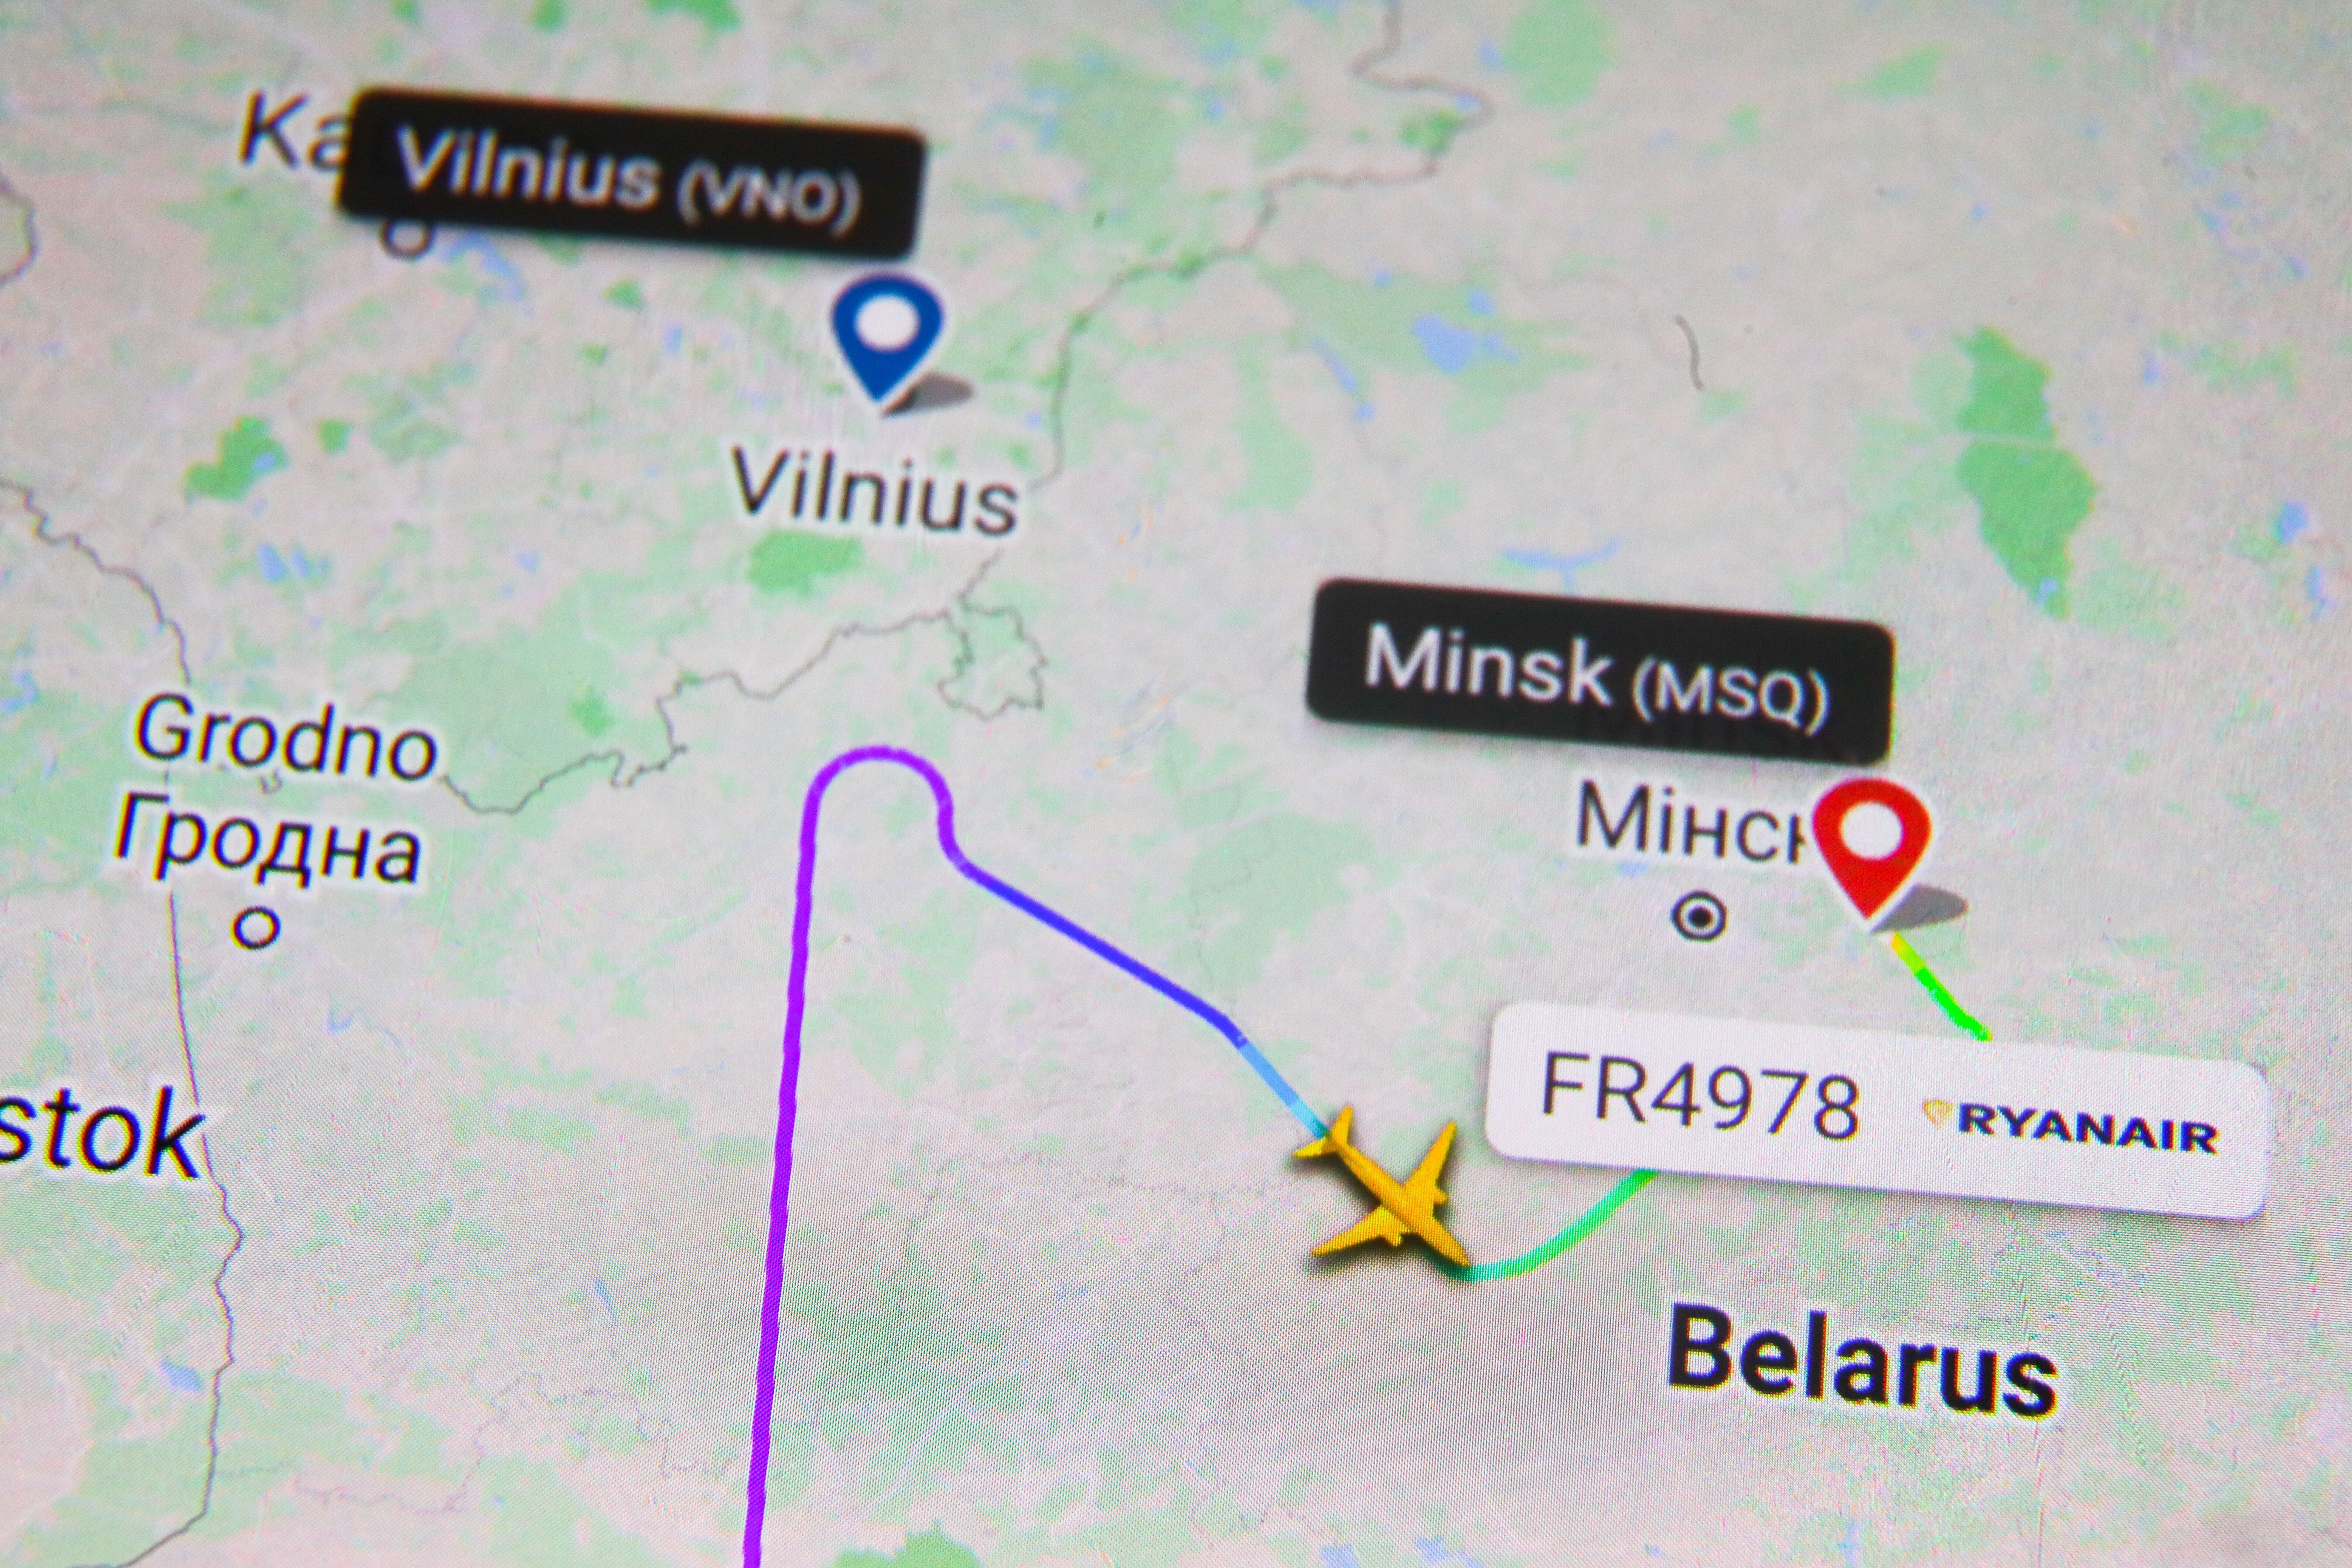 Flight history for Ryanair flight FR4978 shown on Flightradar24 website is displayed on a mobile phone screen photographed fo